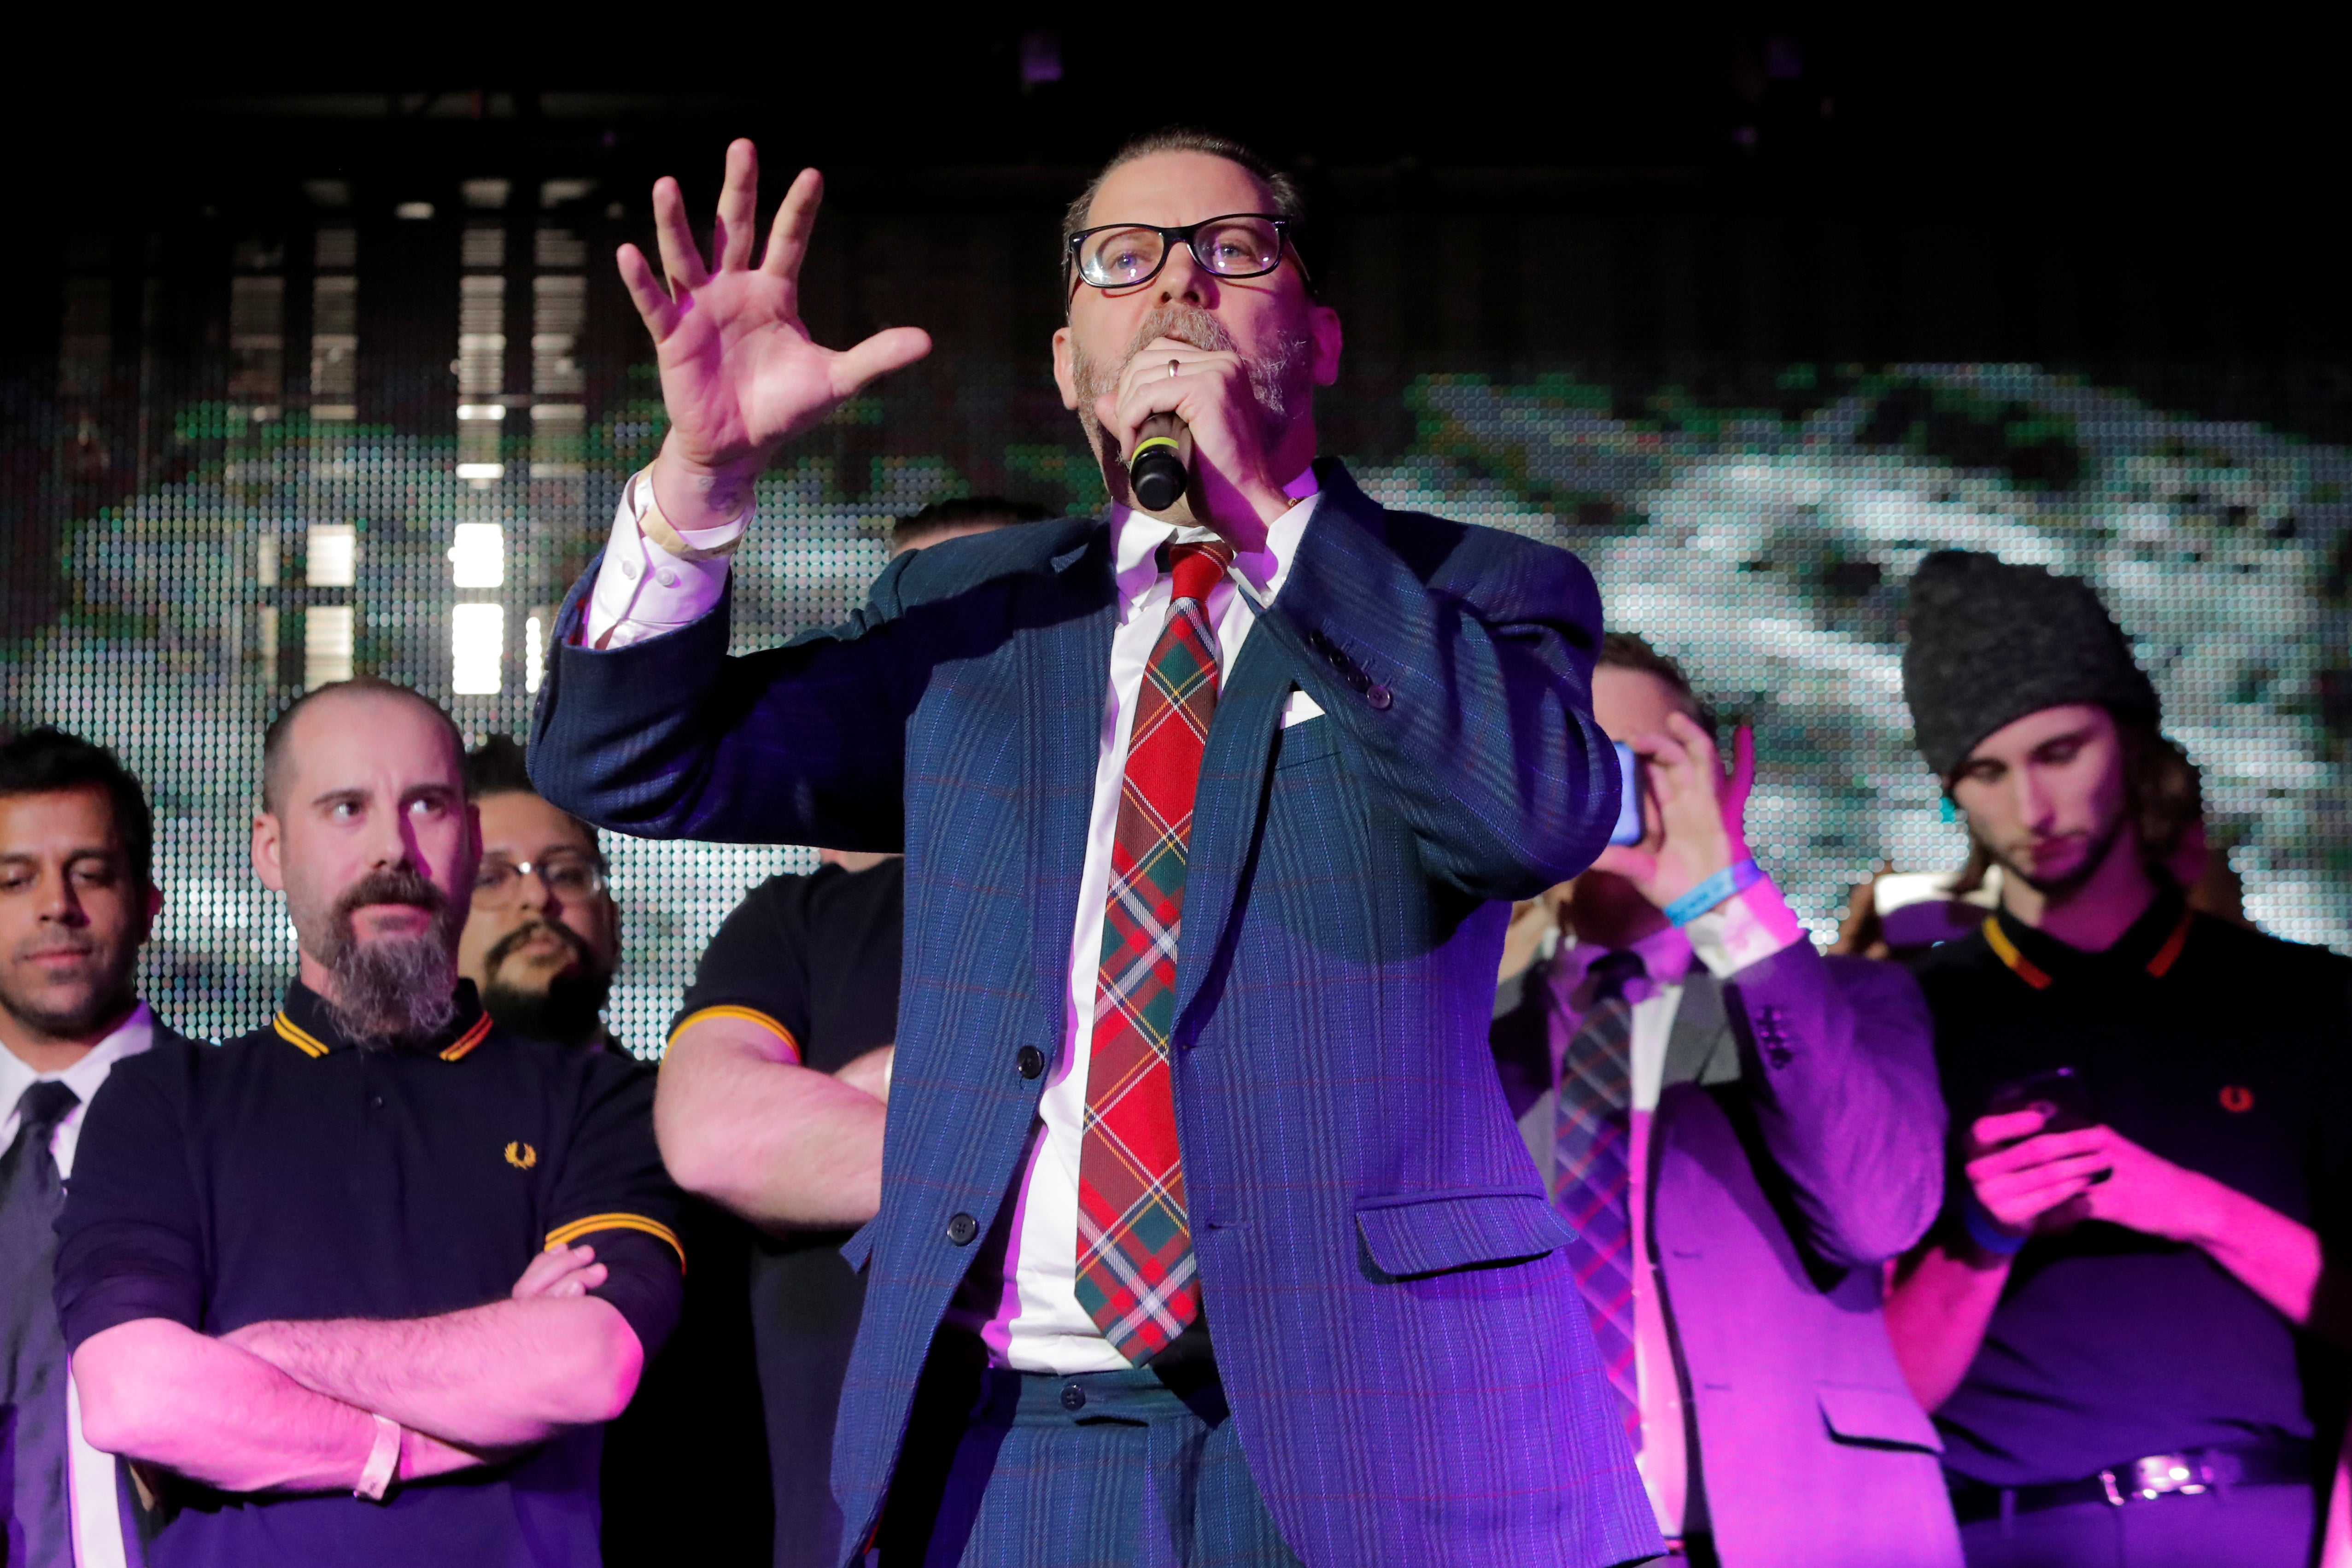 "Vice magazine co-founder Gavin McInnes speaks on stage with members of the Proud Boys organization at the ""A Night for Freedom"" event organized by Mike Cernovich in Manhattan on January 20, 2018."